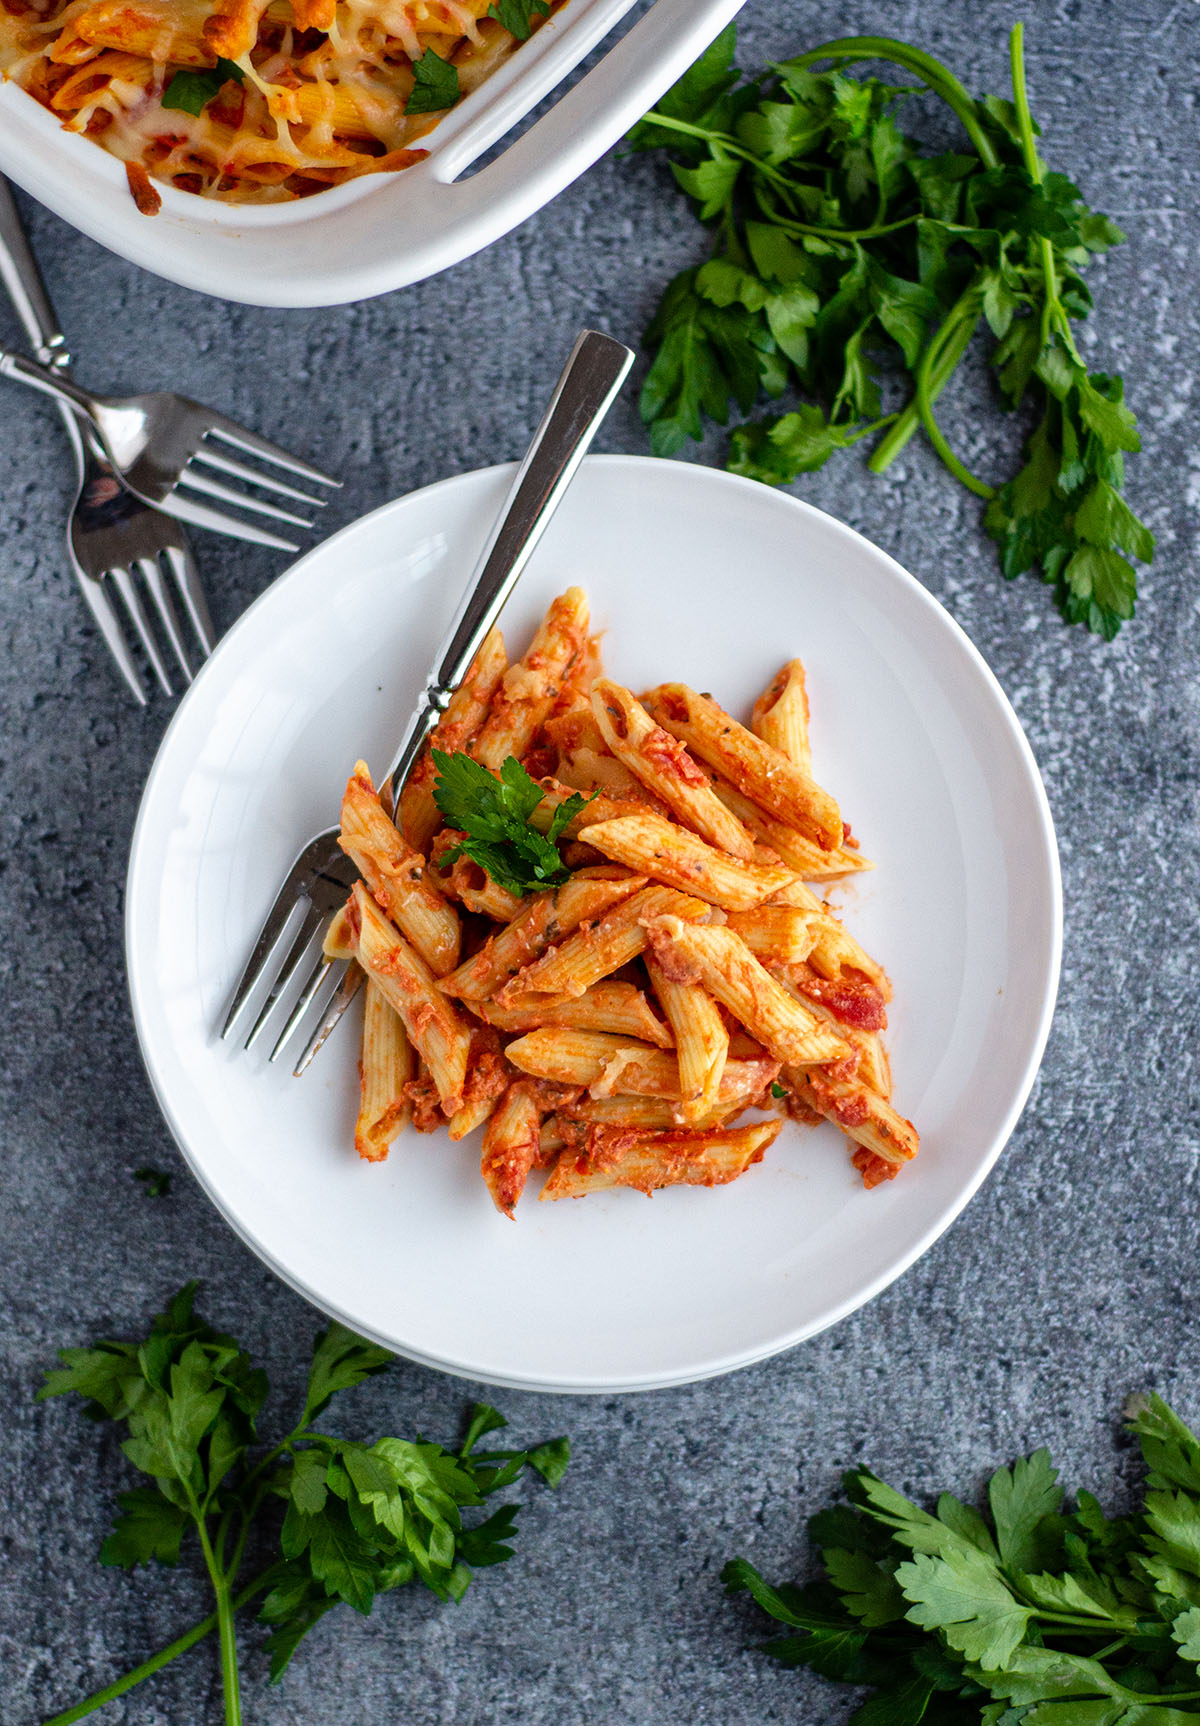 My Favorite Baked Ziti: This easy casserole goes from start to eating in far less than an hour. Perfect for entertaining or a quick dinner idea.